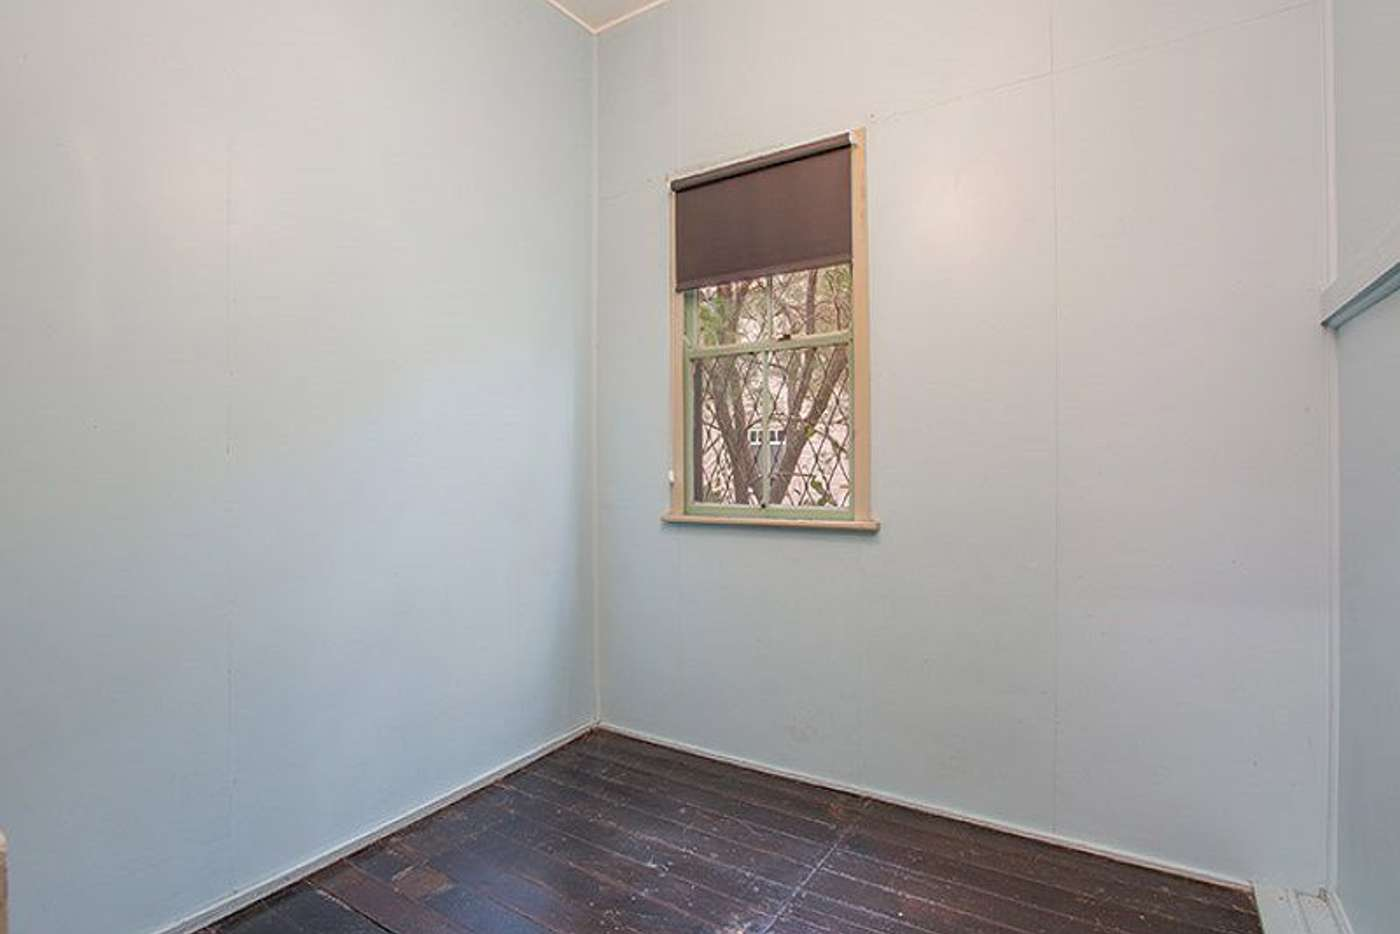 Sixth view of Homely house listing, 108 Browne Street, New Farm QLD 4005